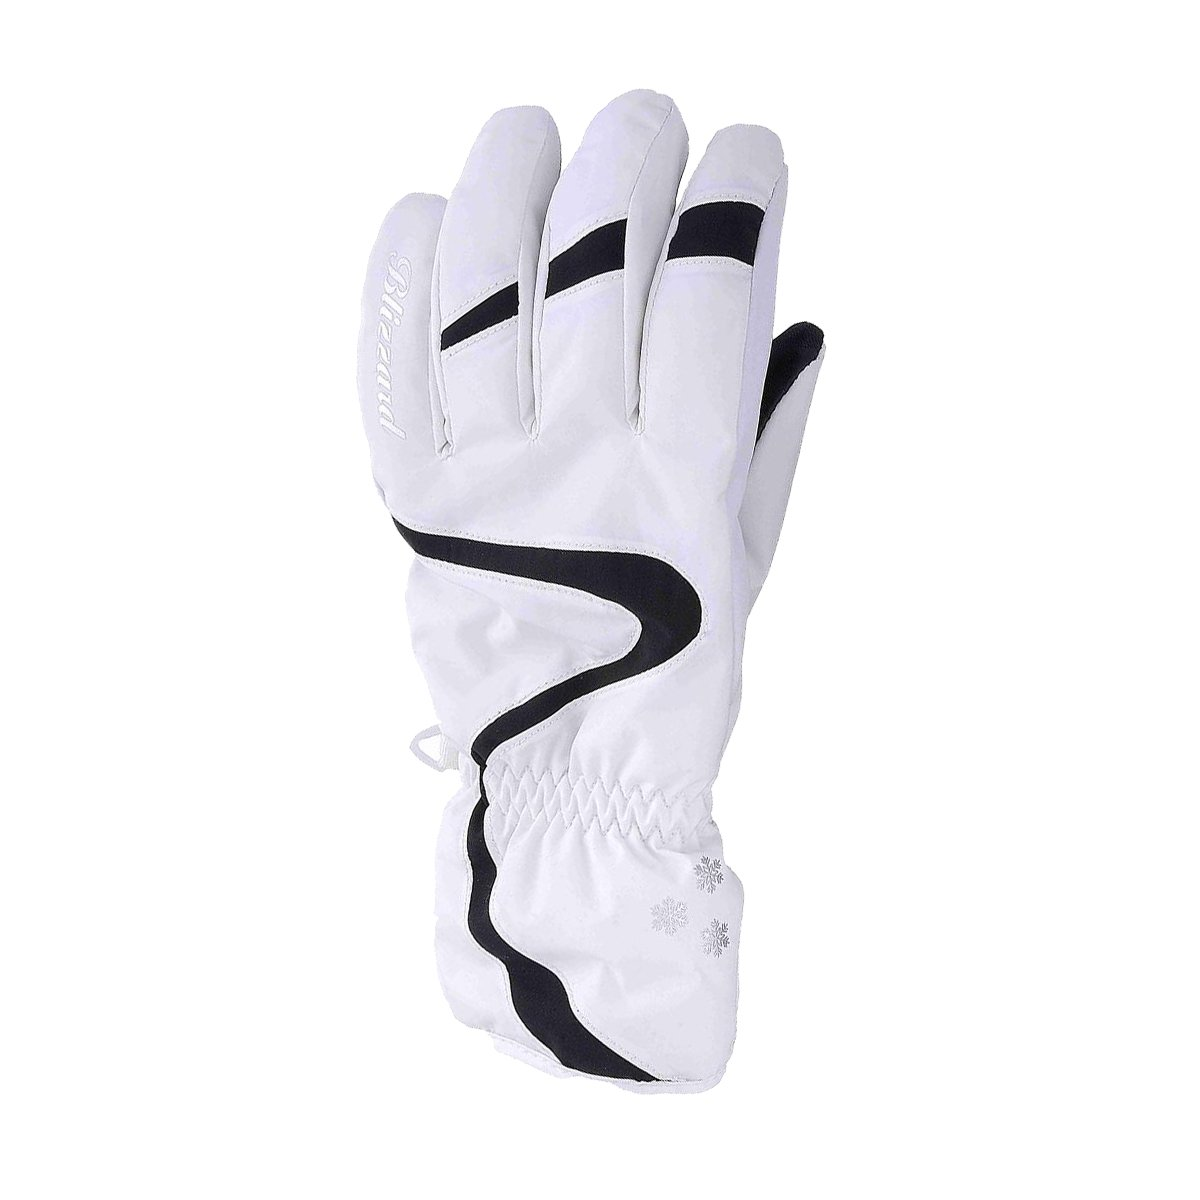 Blizzard Viva Carver white/black 2014